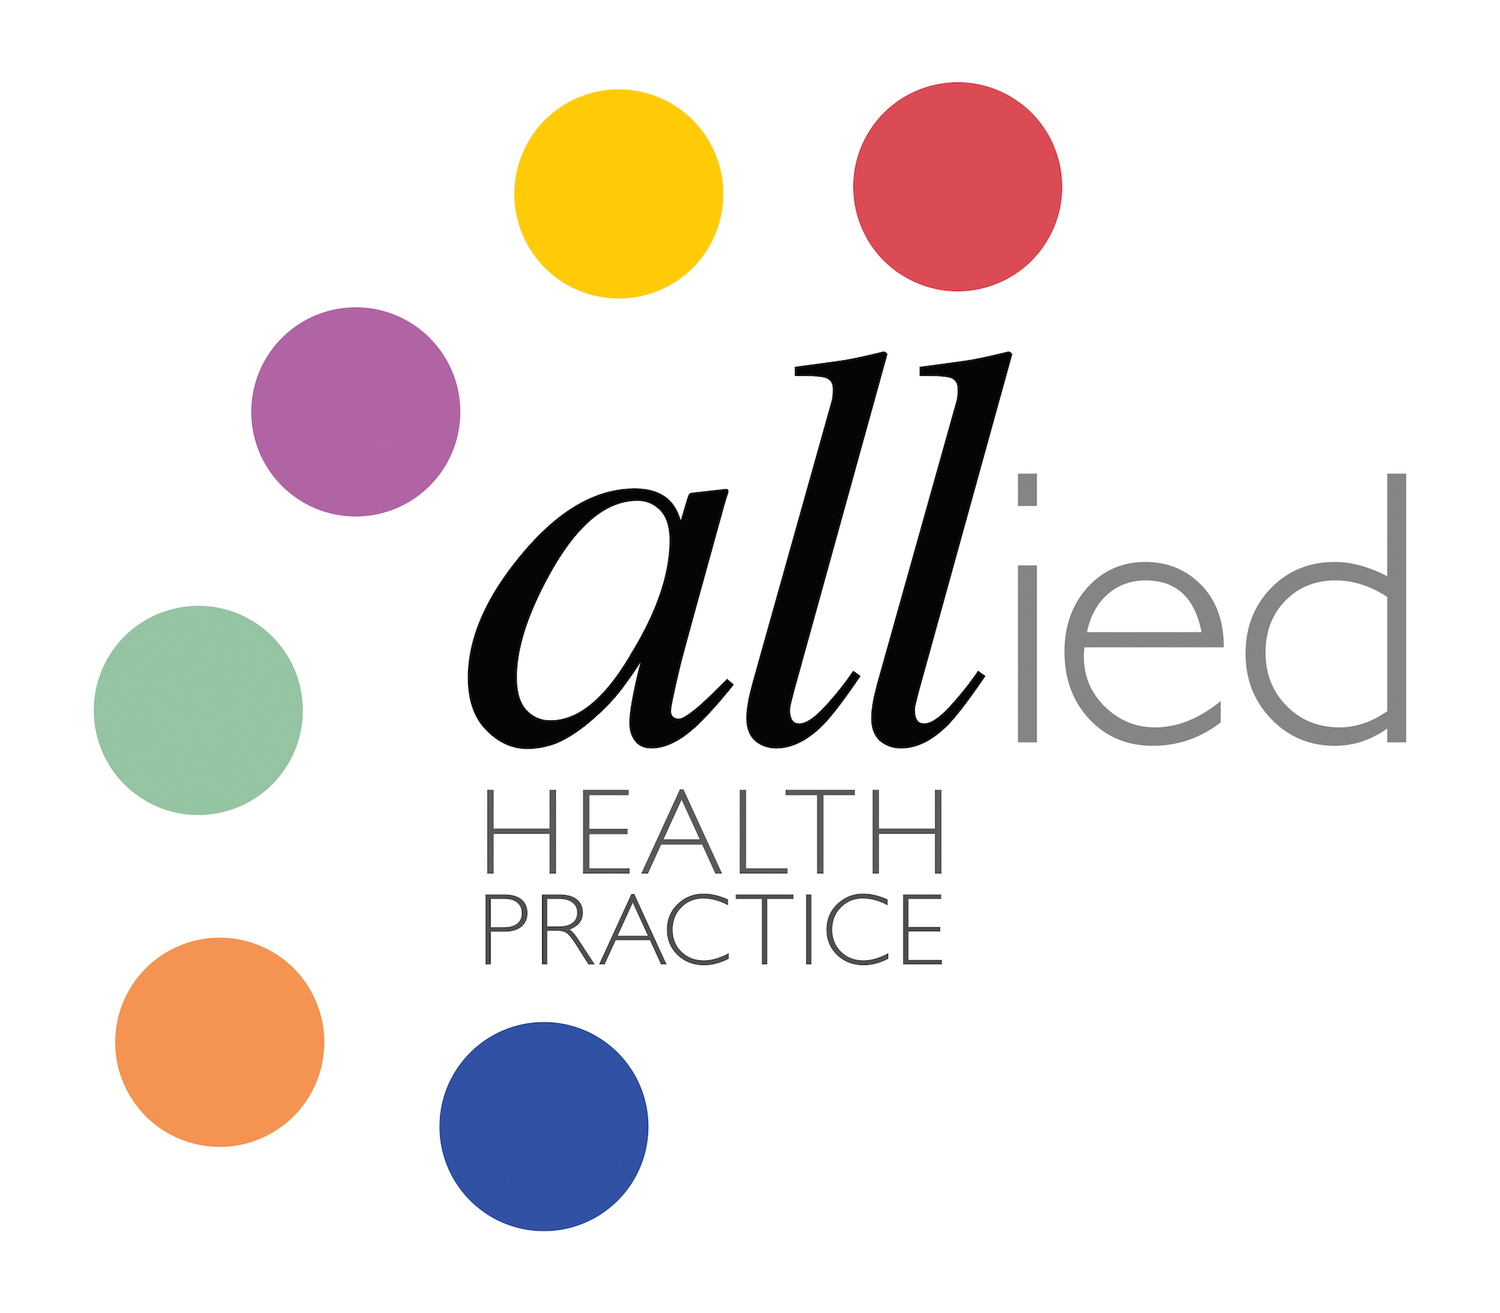 allied health 1 American allied health offers the following certifications online: medical assistant, phlebotomy technician, pharmacy technician, patient care technician, ekg technician, medical coding and billing, physical therapy aide, veterinarian assistant.